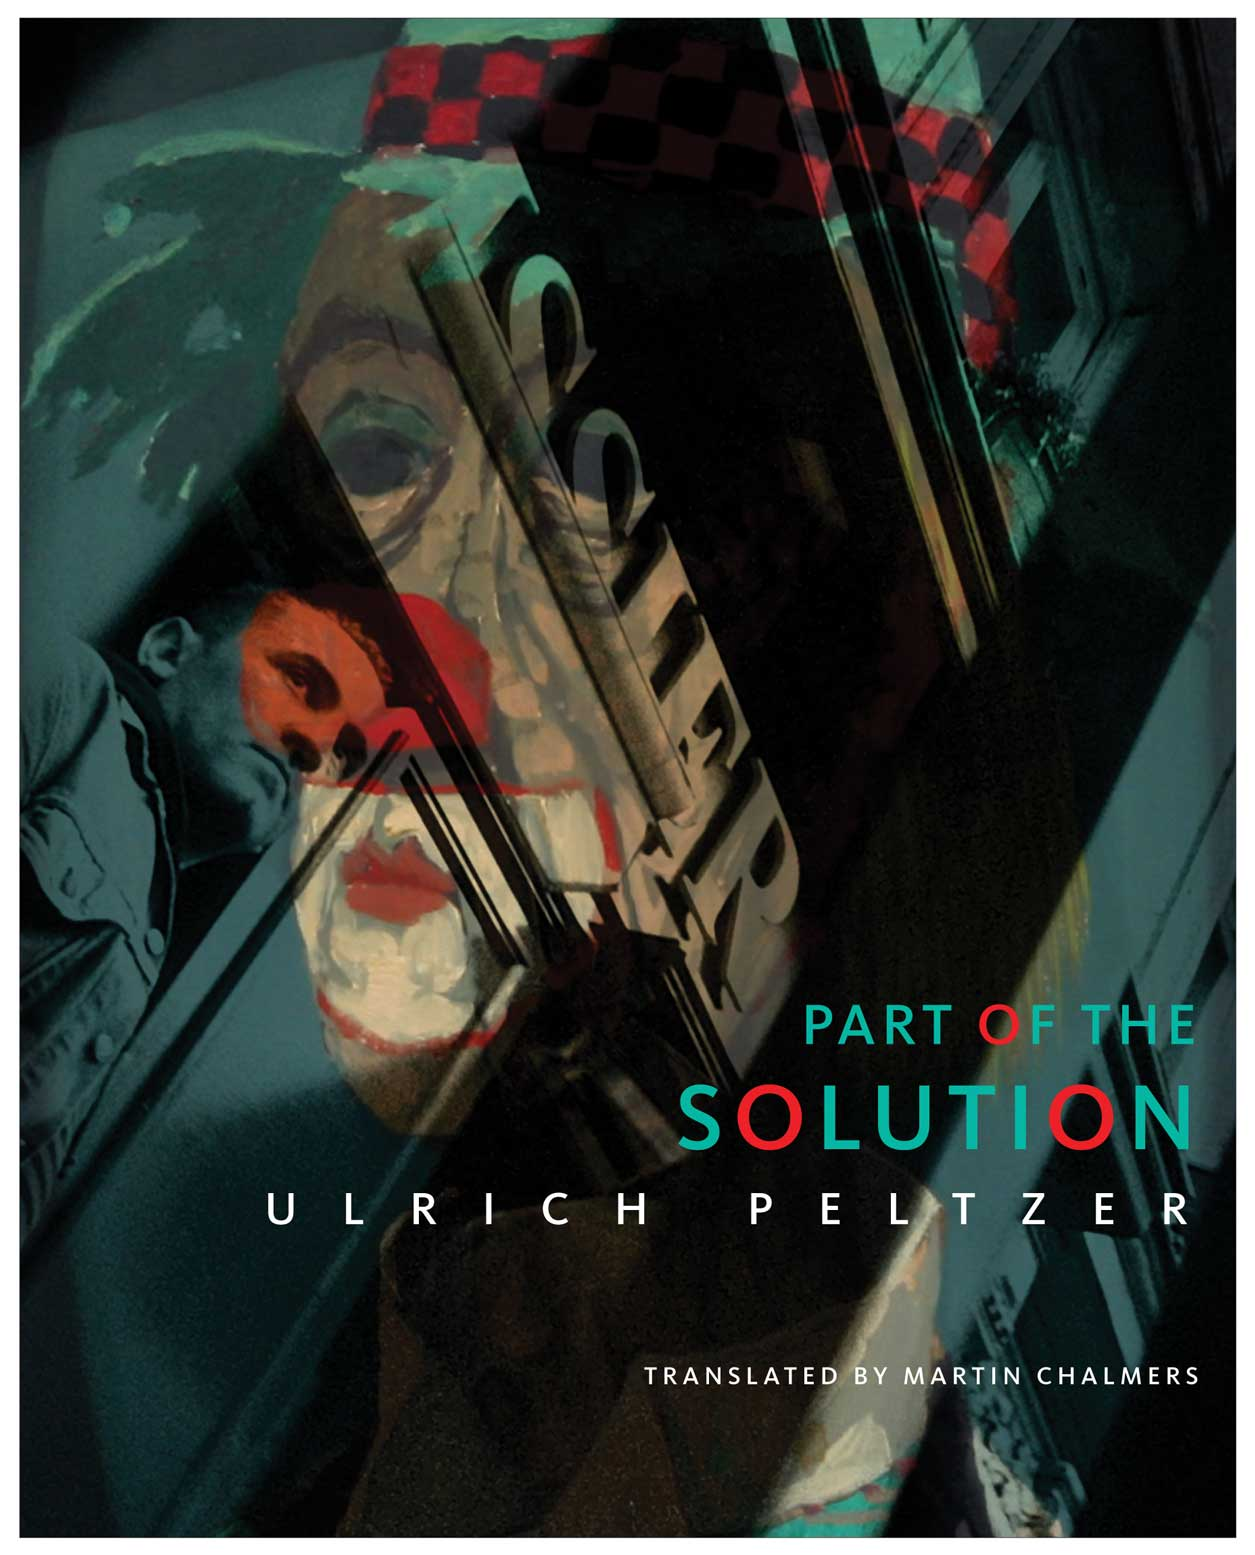 Part of the Solution by Ulrich Peltzer |  Seagull Books